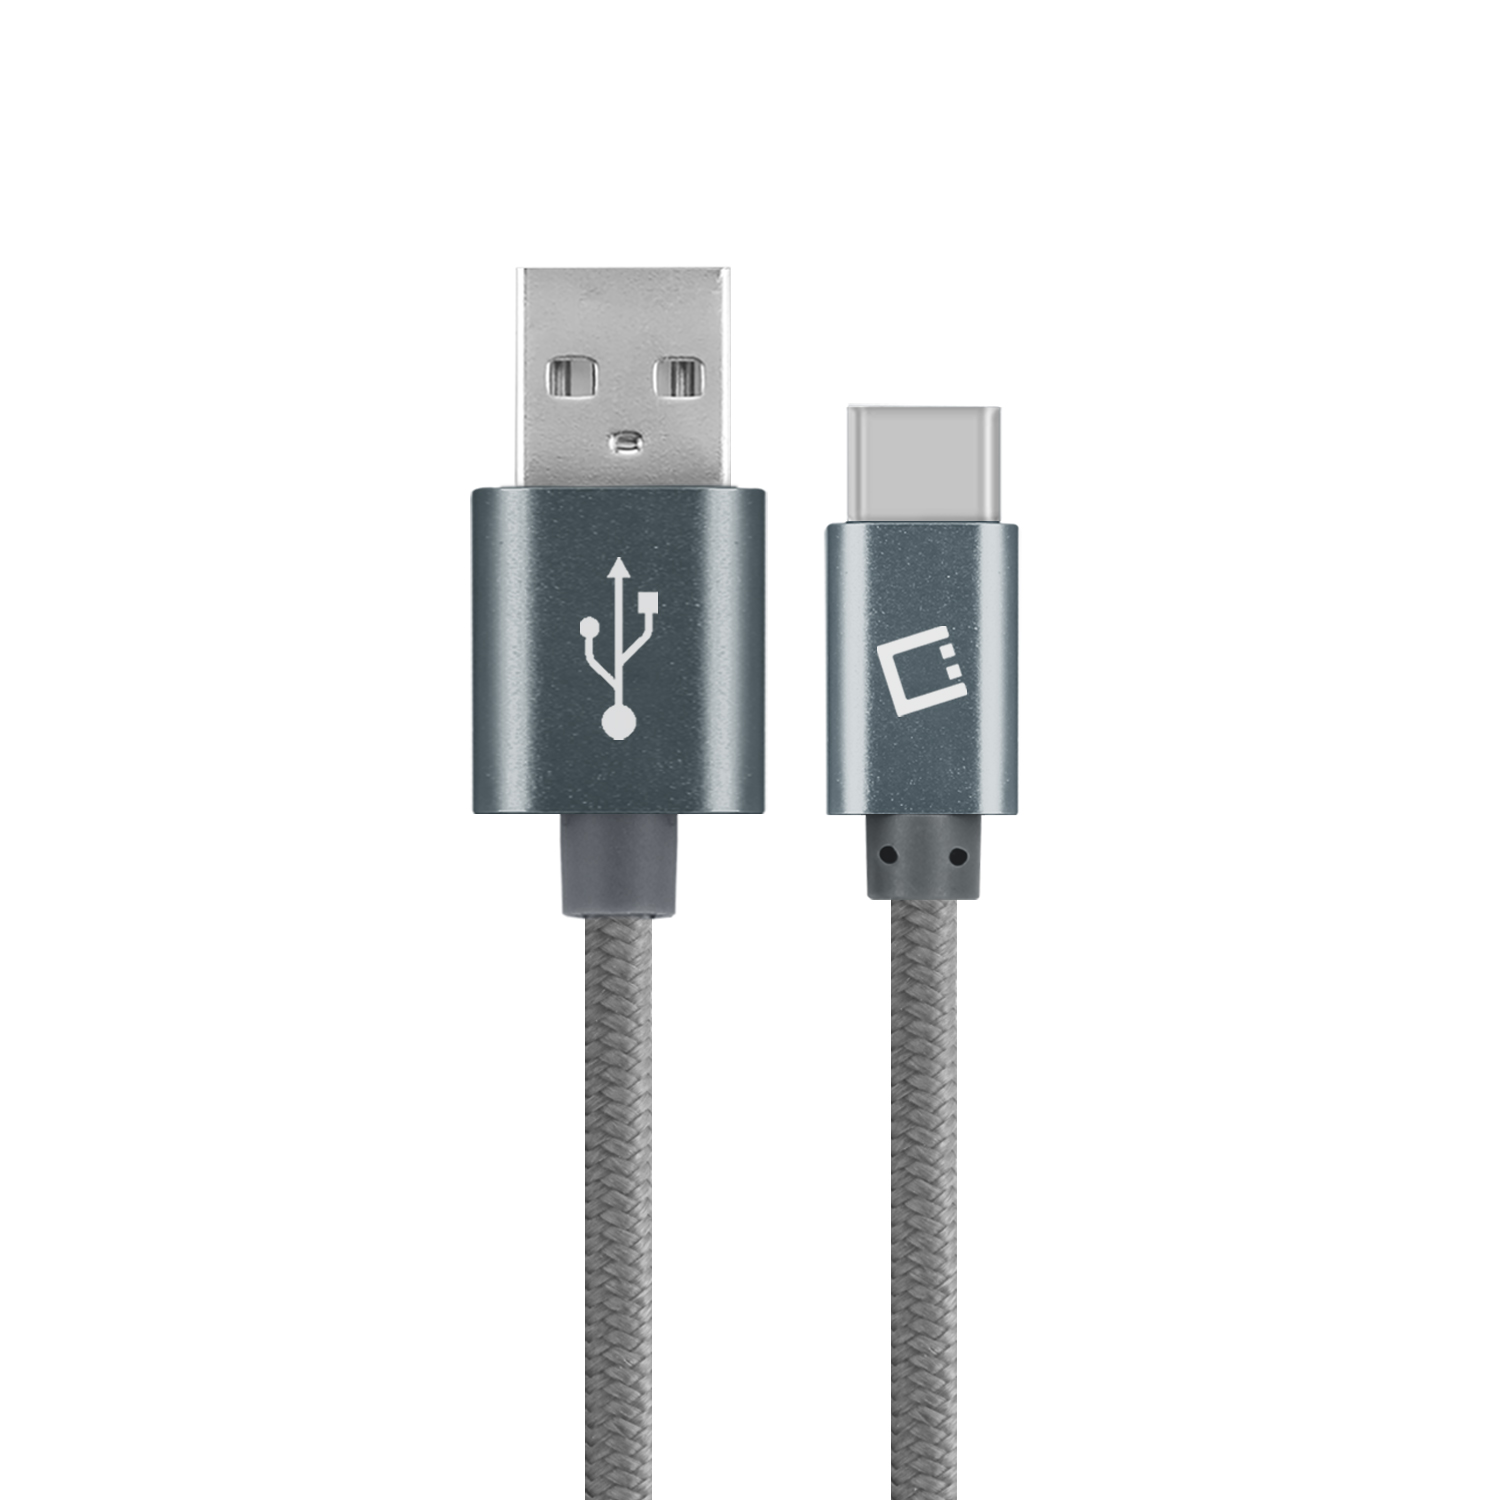 Samsung Galaxy A20 USB Type-C To Type-A Braided Data Power Cable Grey 6ft Braided